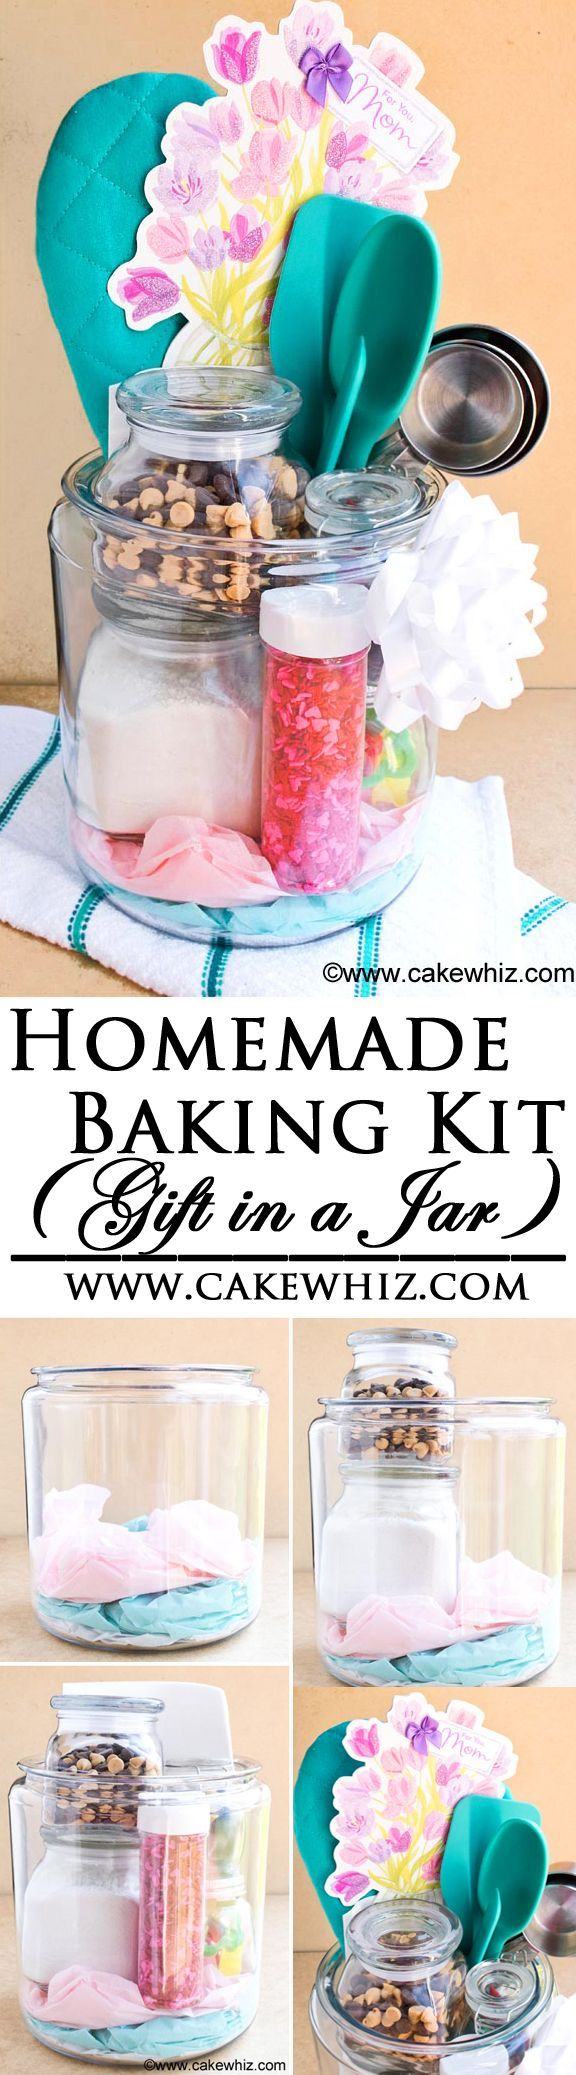 Use this step by step tutorial to make an easy and beautiful HOMEMADE BAKING KIT! It's the perfect gift in a jar for bakers and cake decorators (Ad). From http://cakewhiz.com